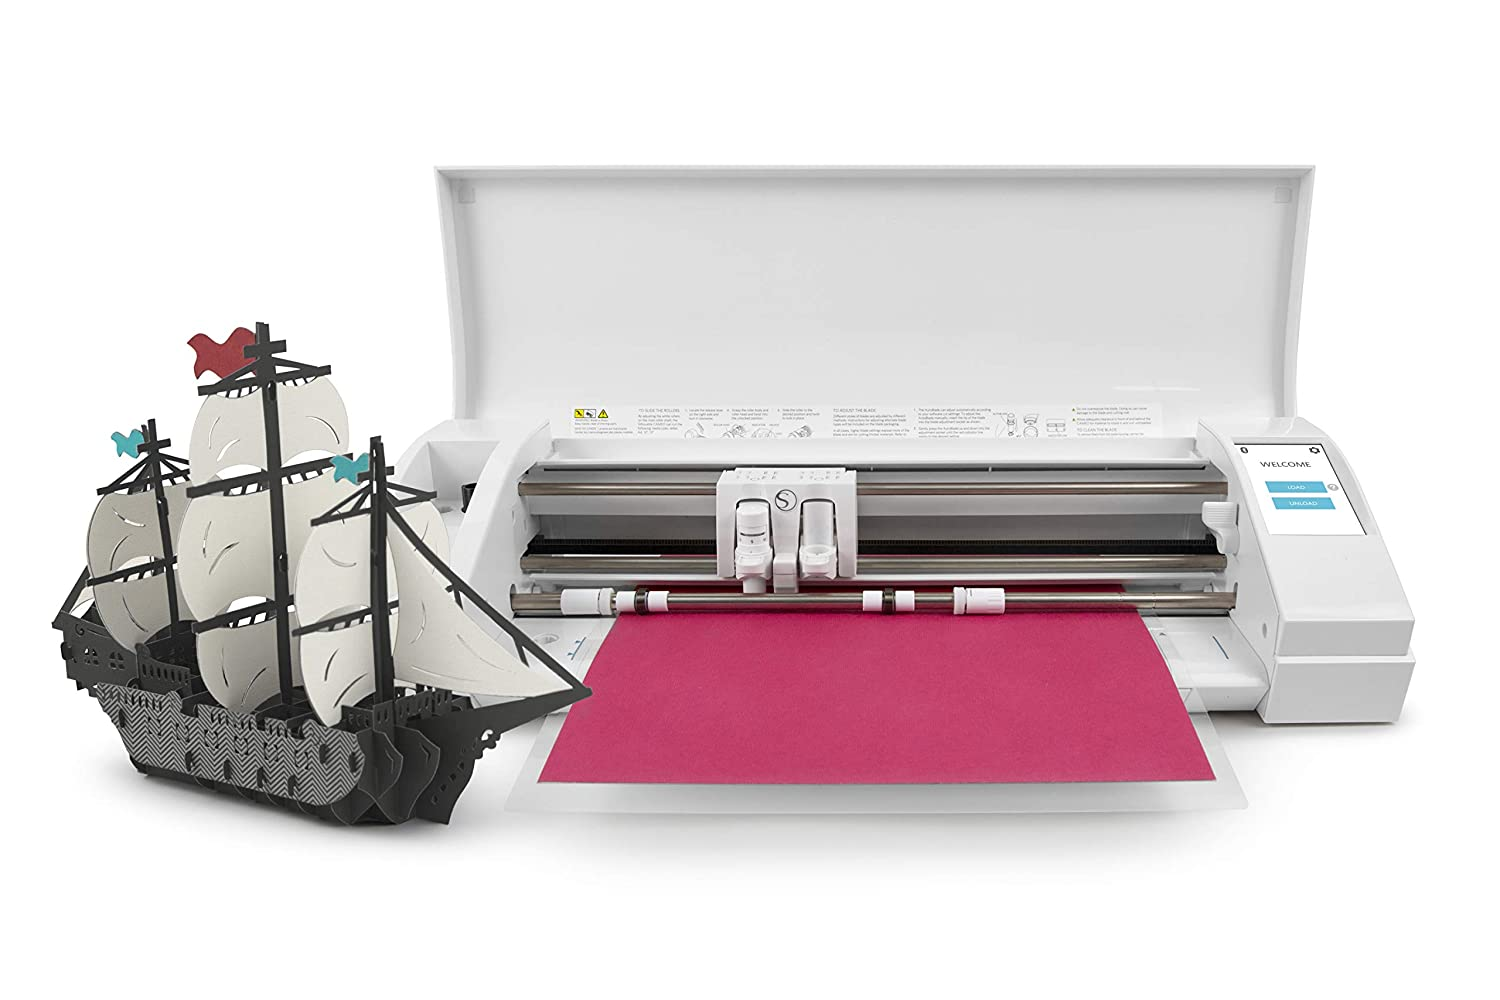 Silhouette Cameo 3 with Bluetooth Auto Adjusting Cutting Blades 110v-220v Power Cord Vinyl Trimmer 12x12 Mat